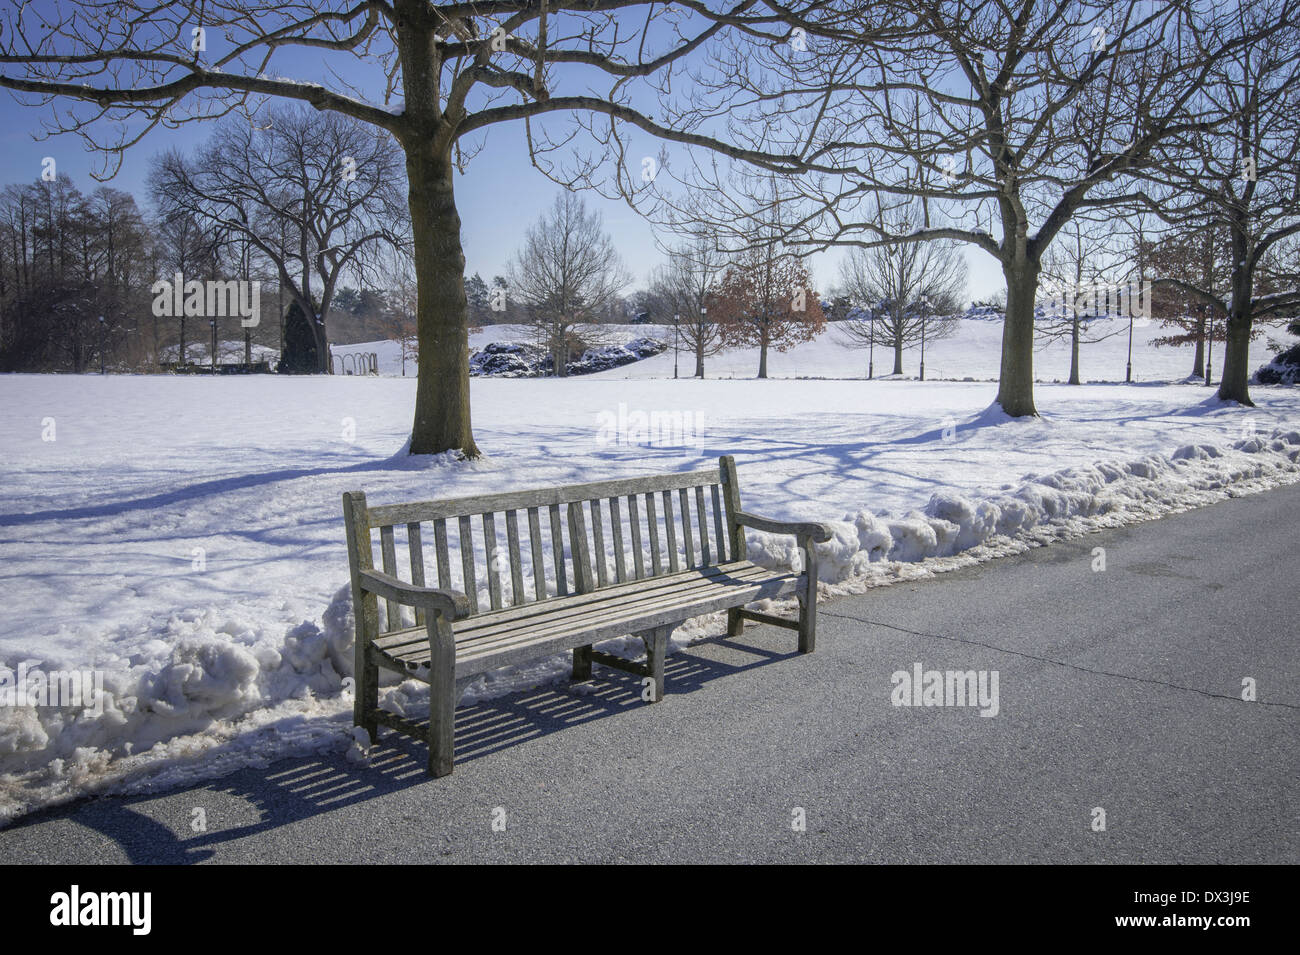 Empty Park Bench, Cold Winter Day - Stock Image